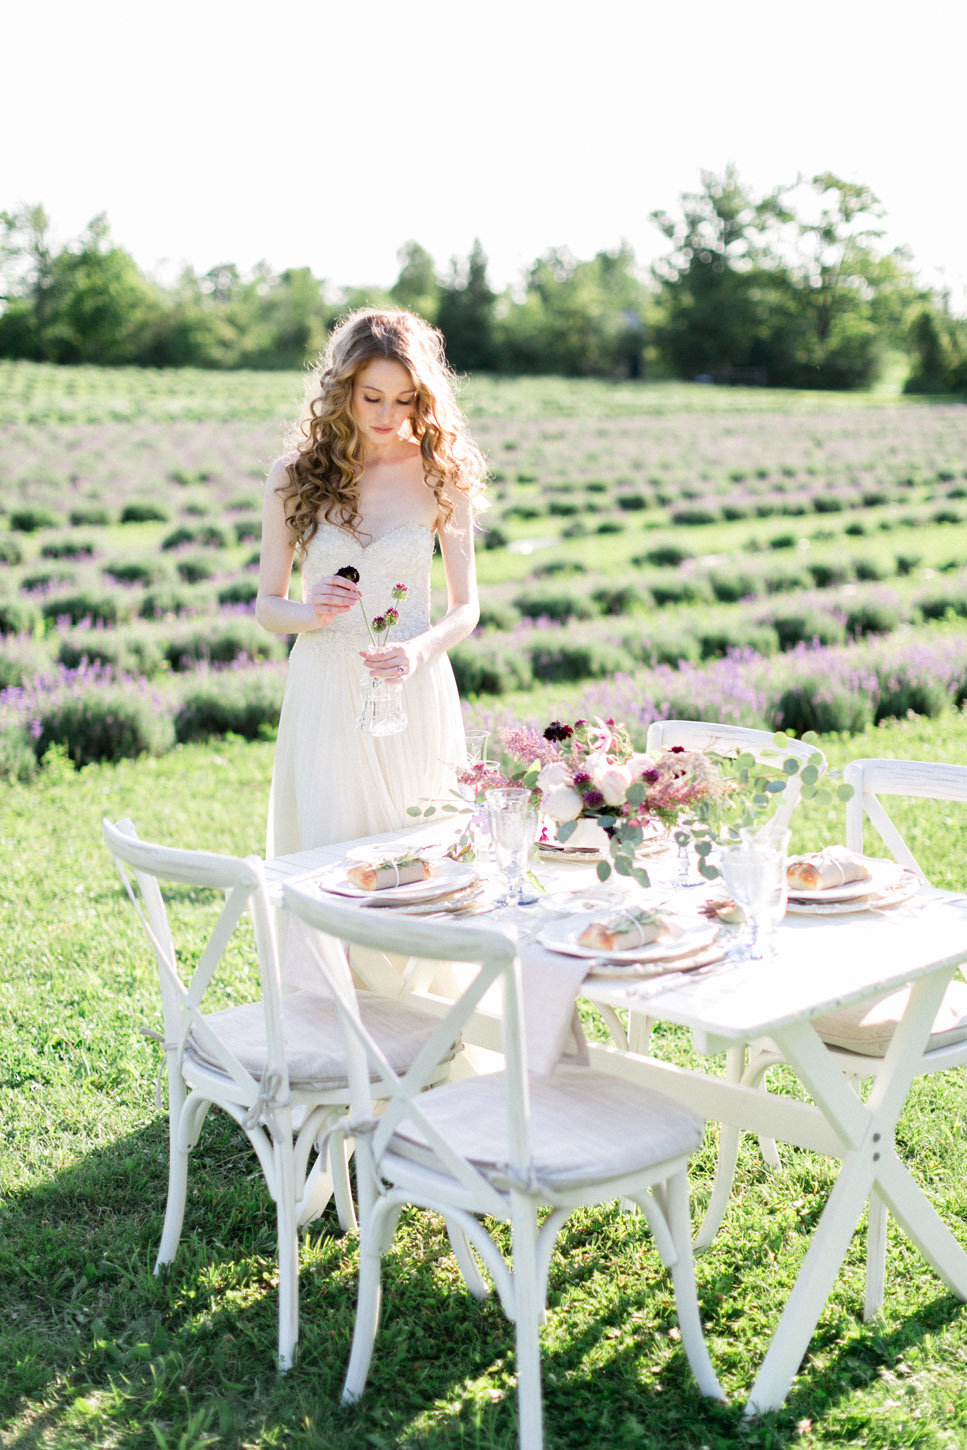 Lavender Farm Wedding Editorial | Wedding Planning & Design by Cynthia Martyn Fine Events | Fine Art Wedding Planner & Designer